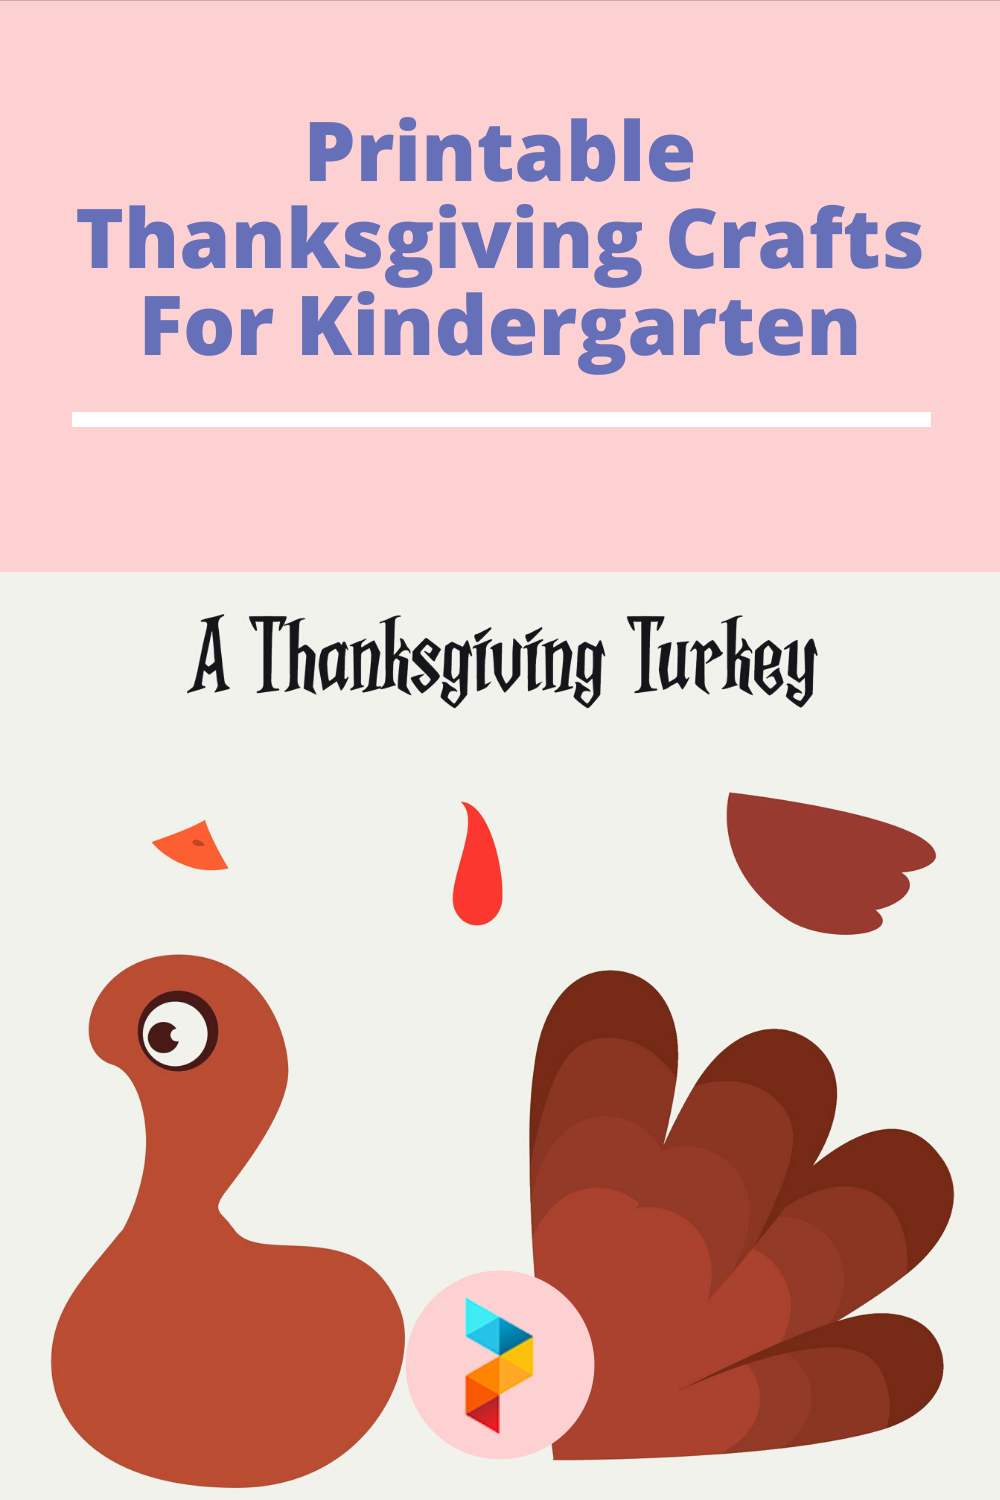 Printable Thanksgiving Crafts For Kindergarten